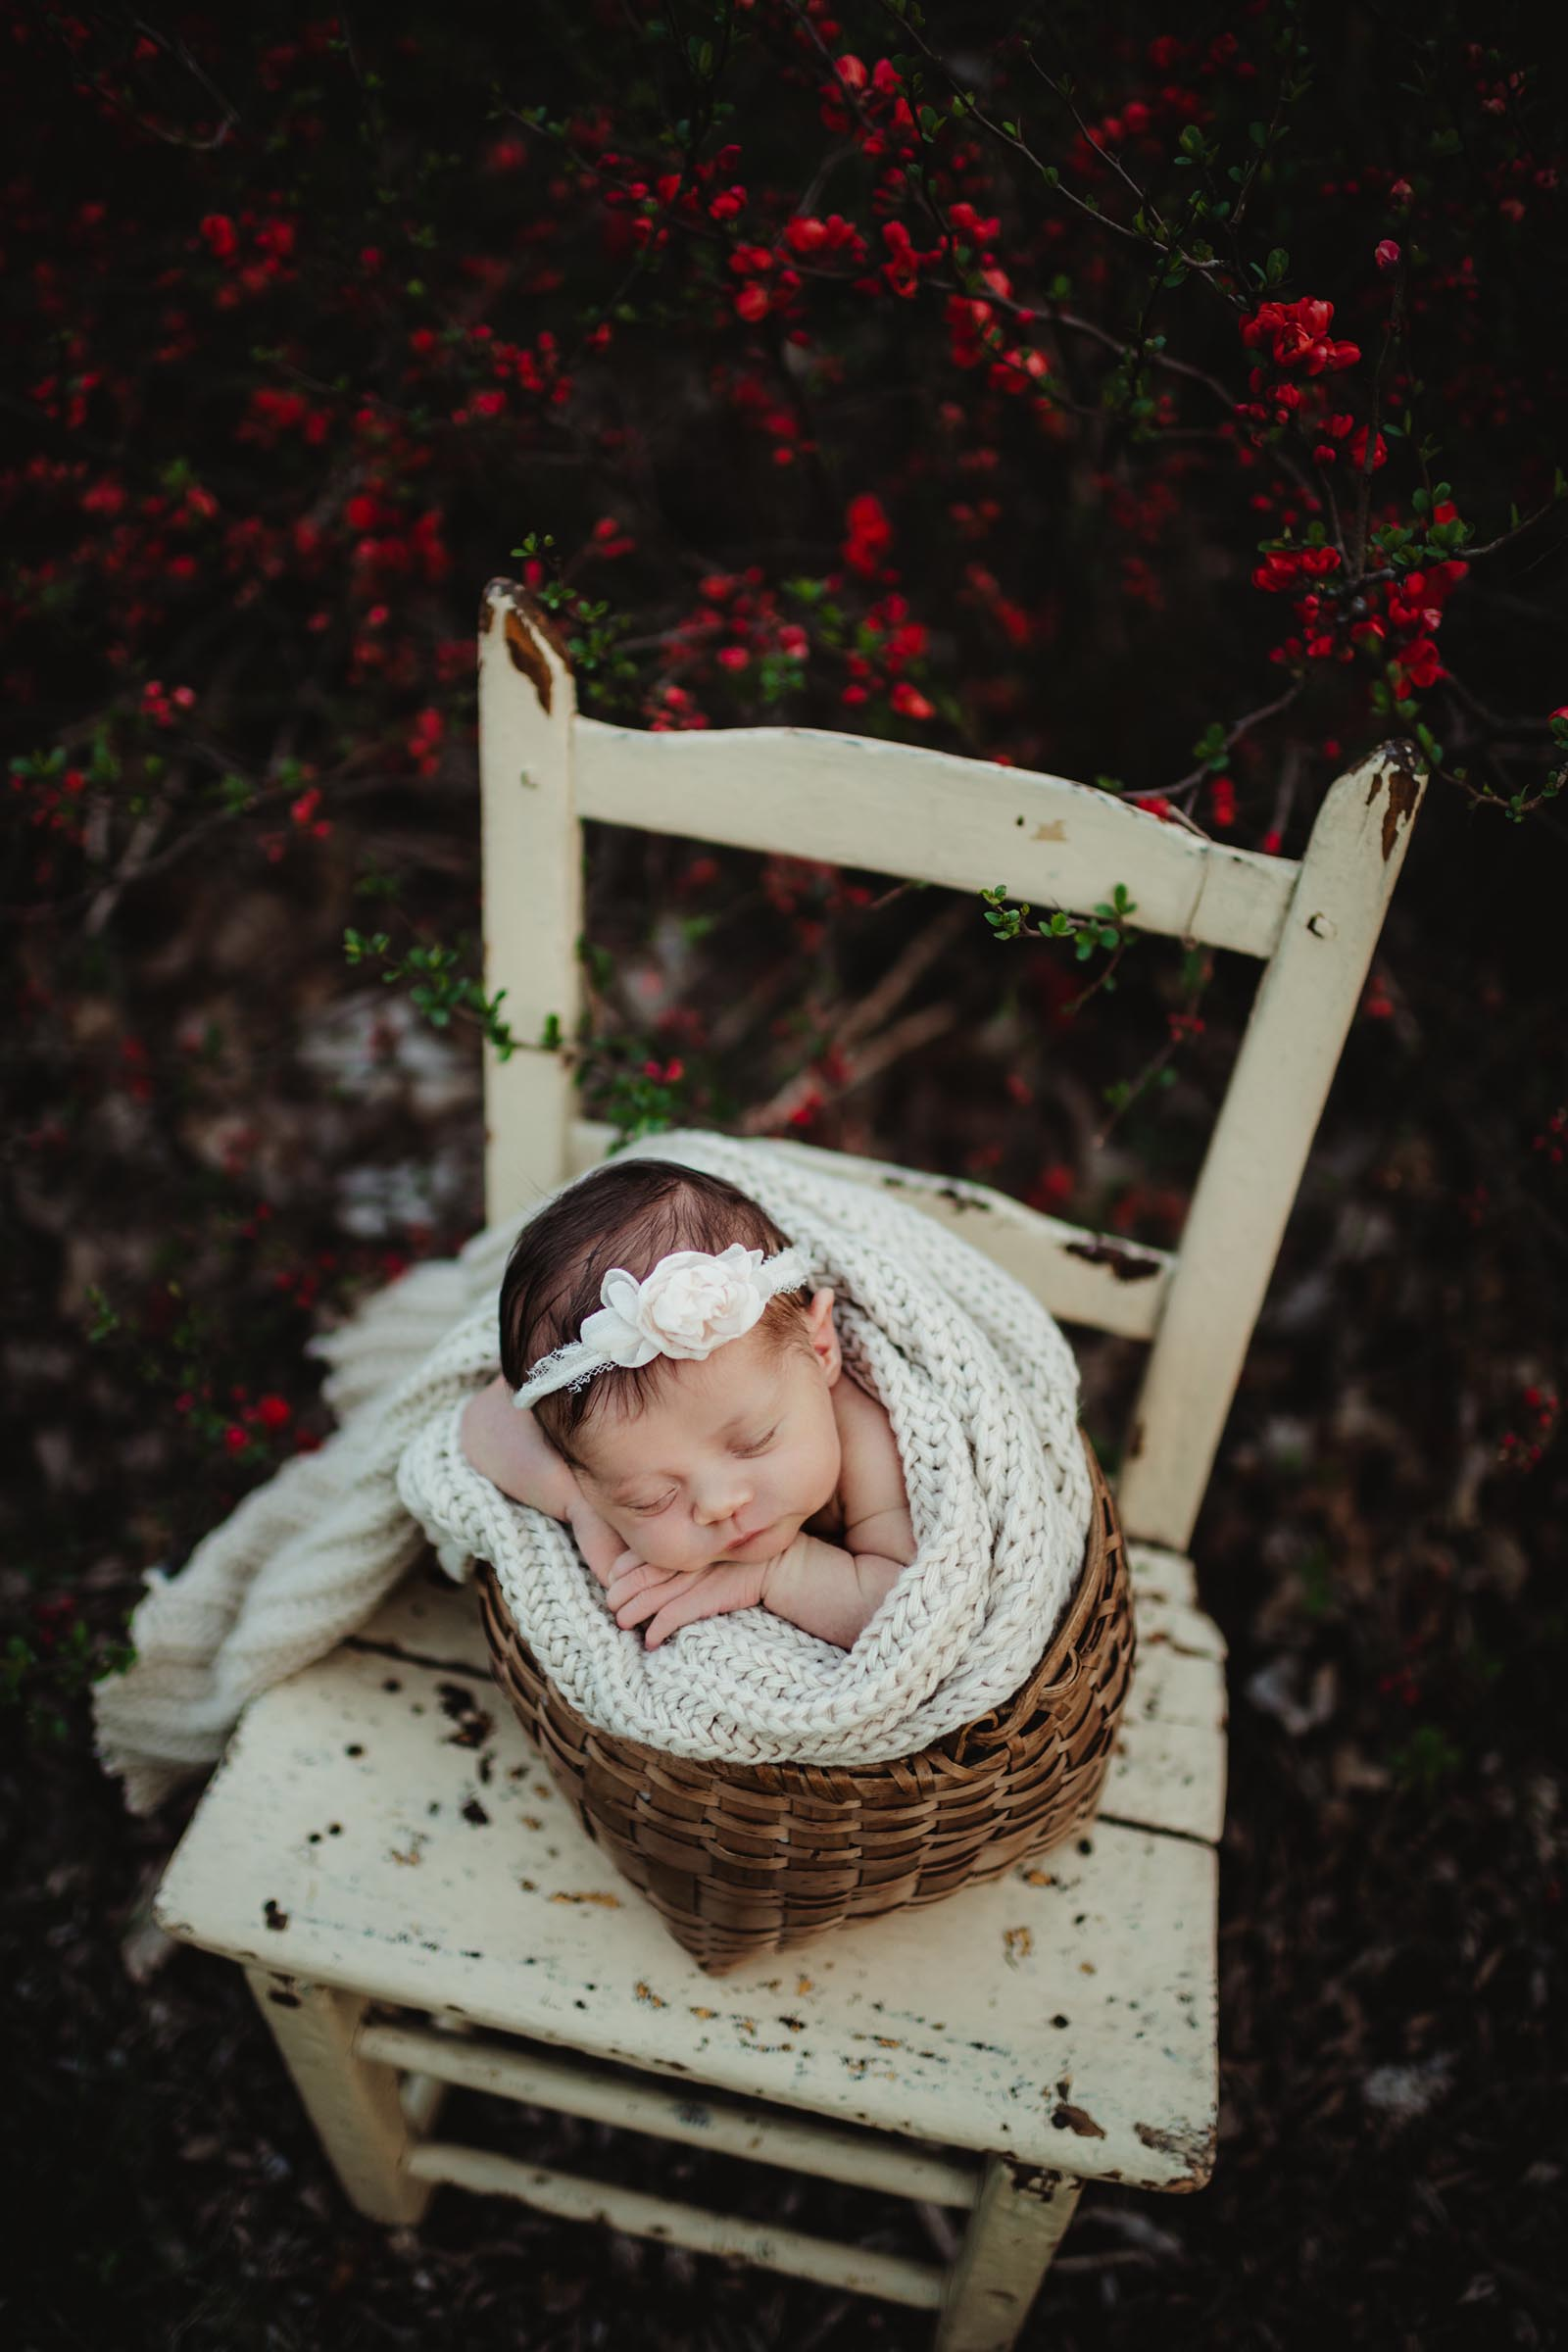 baby sleeping in bucket pose with floral headband